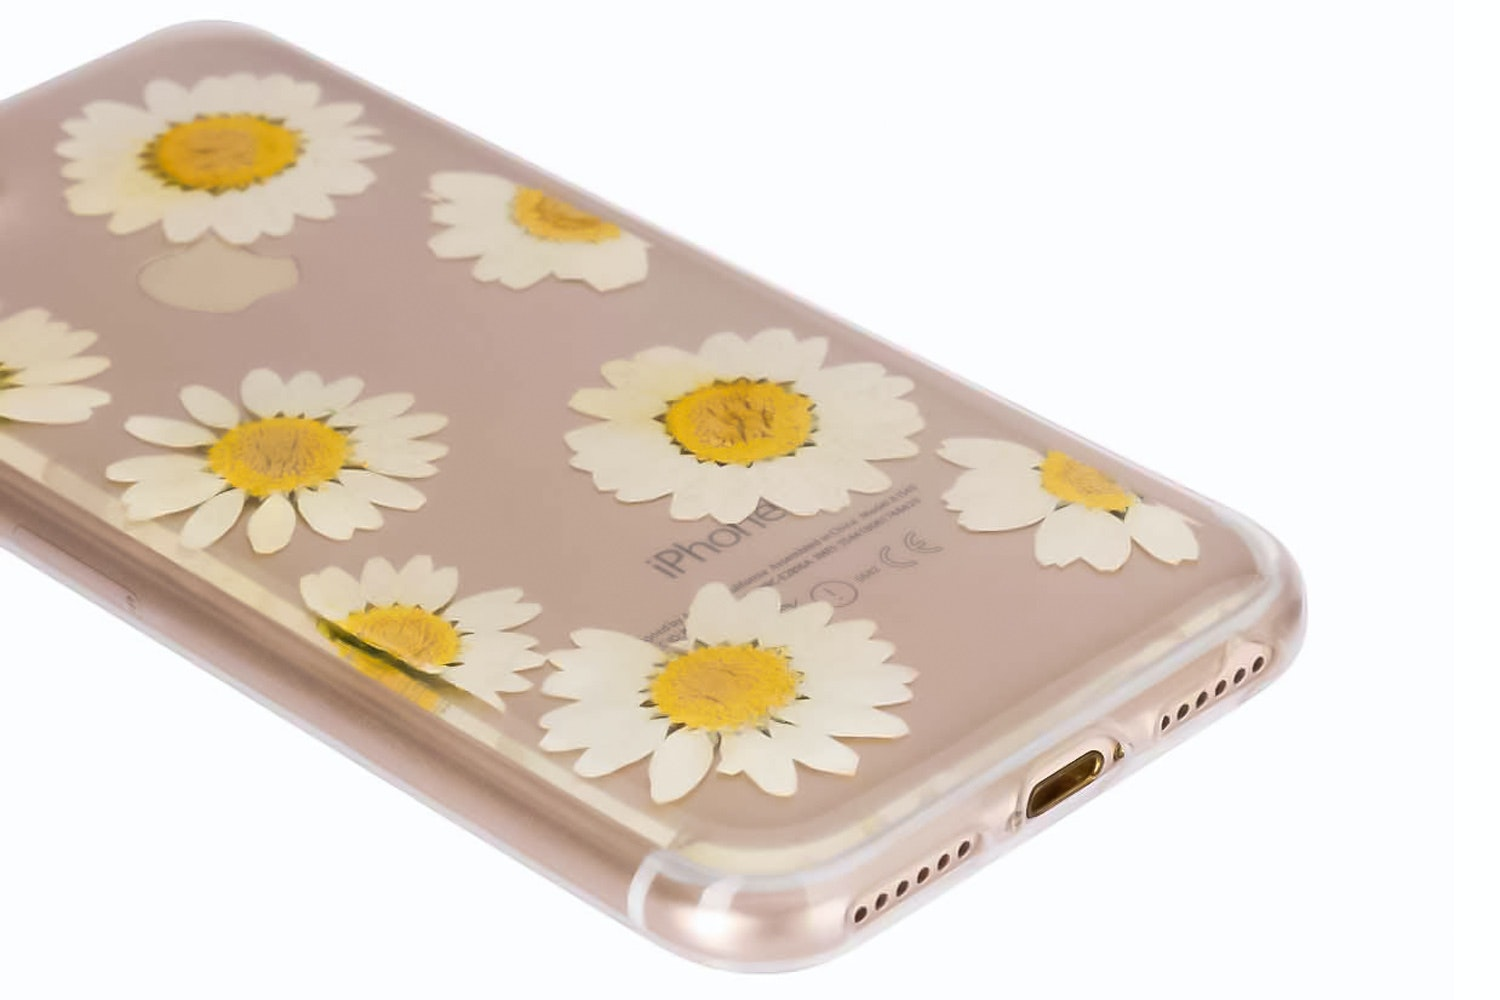 Flavr iPlate Real Flower Daisy for iPhone 6/6s/7   Multi Colour